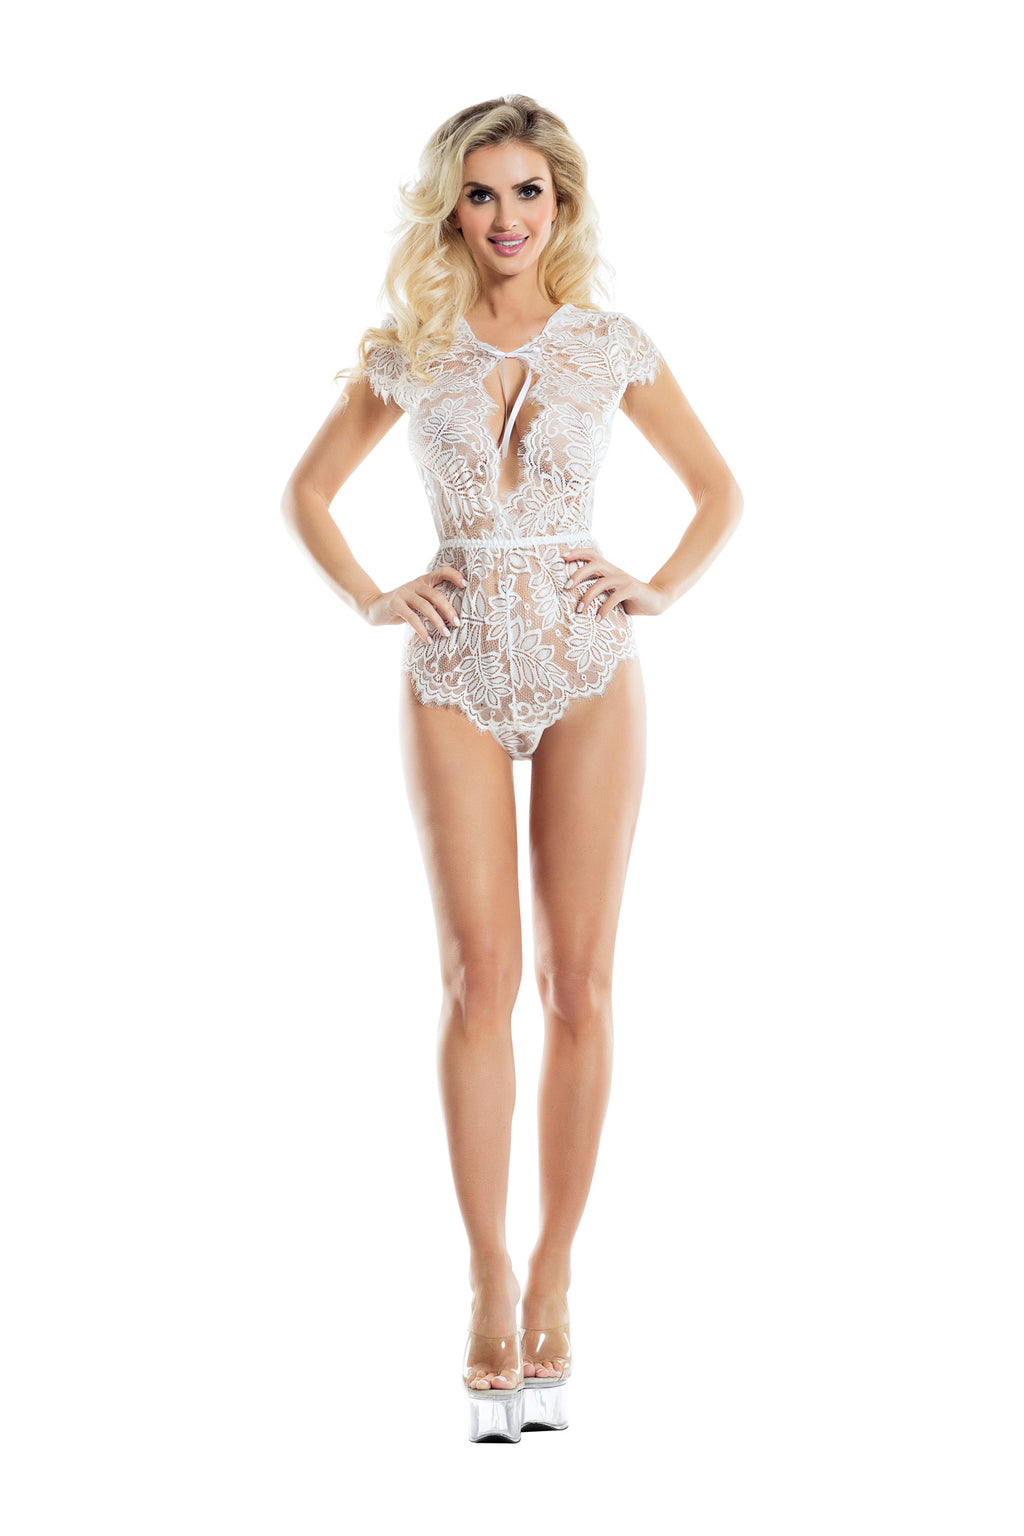 Raveware Ambrosia Fern Lace Teddy Womens Adult Exotic Lingerie Sets - Nastassy